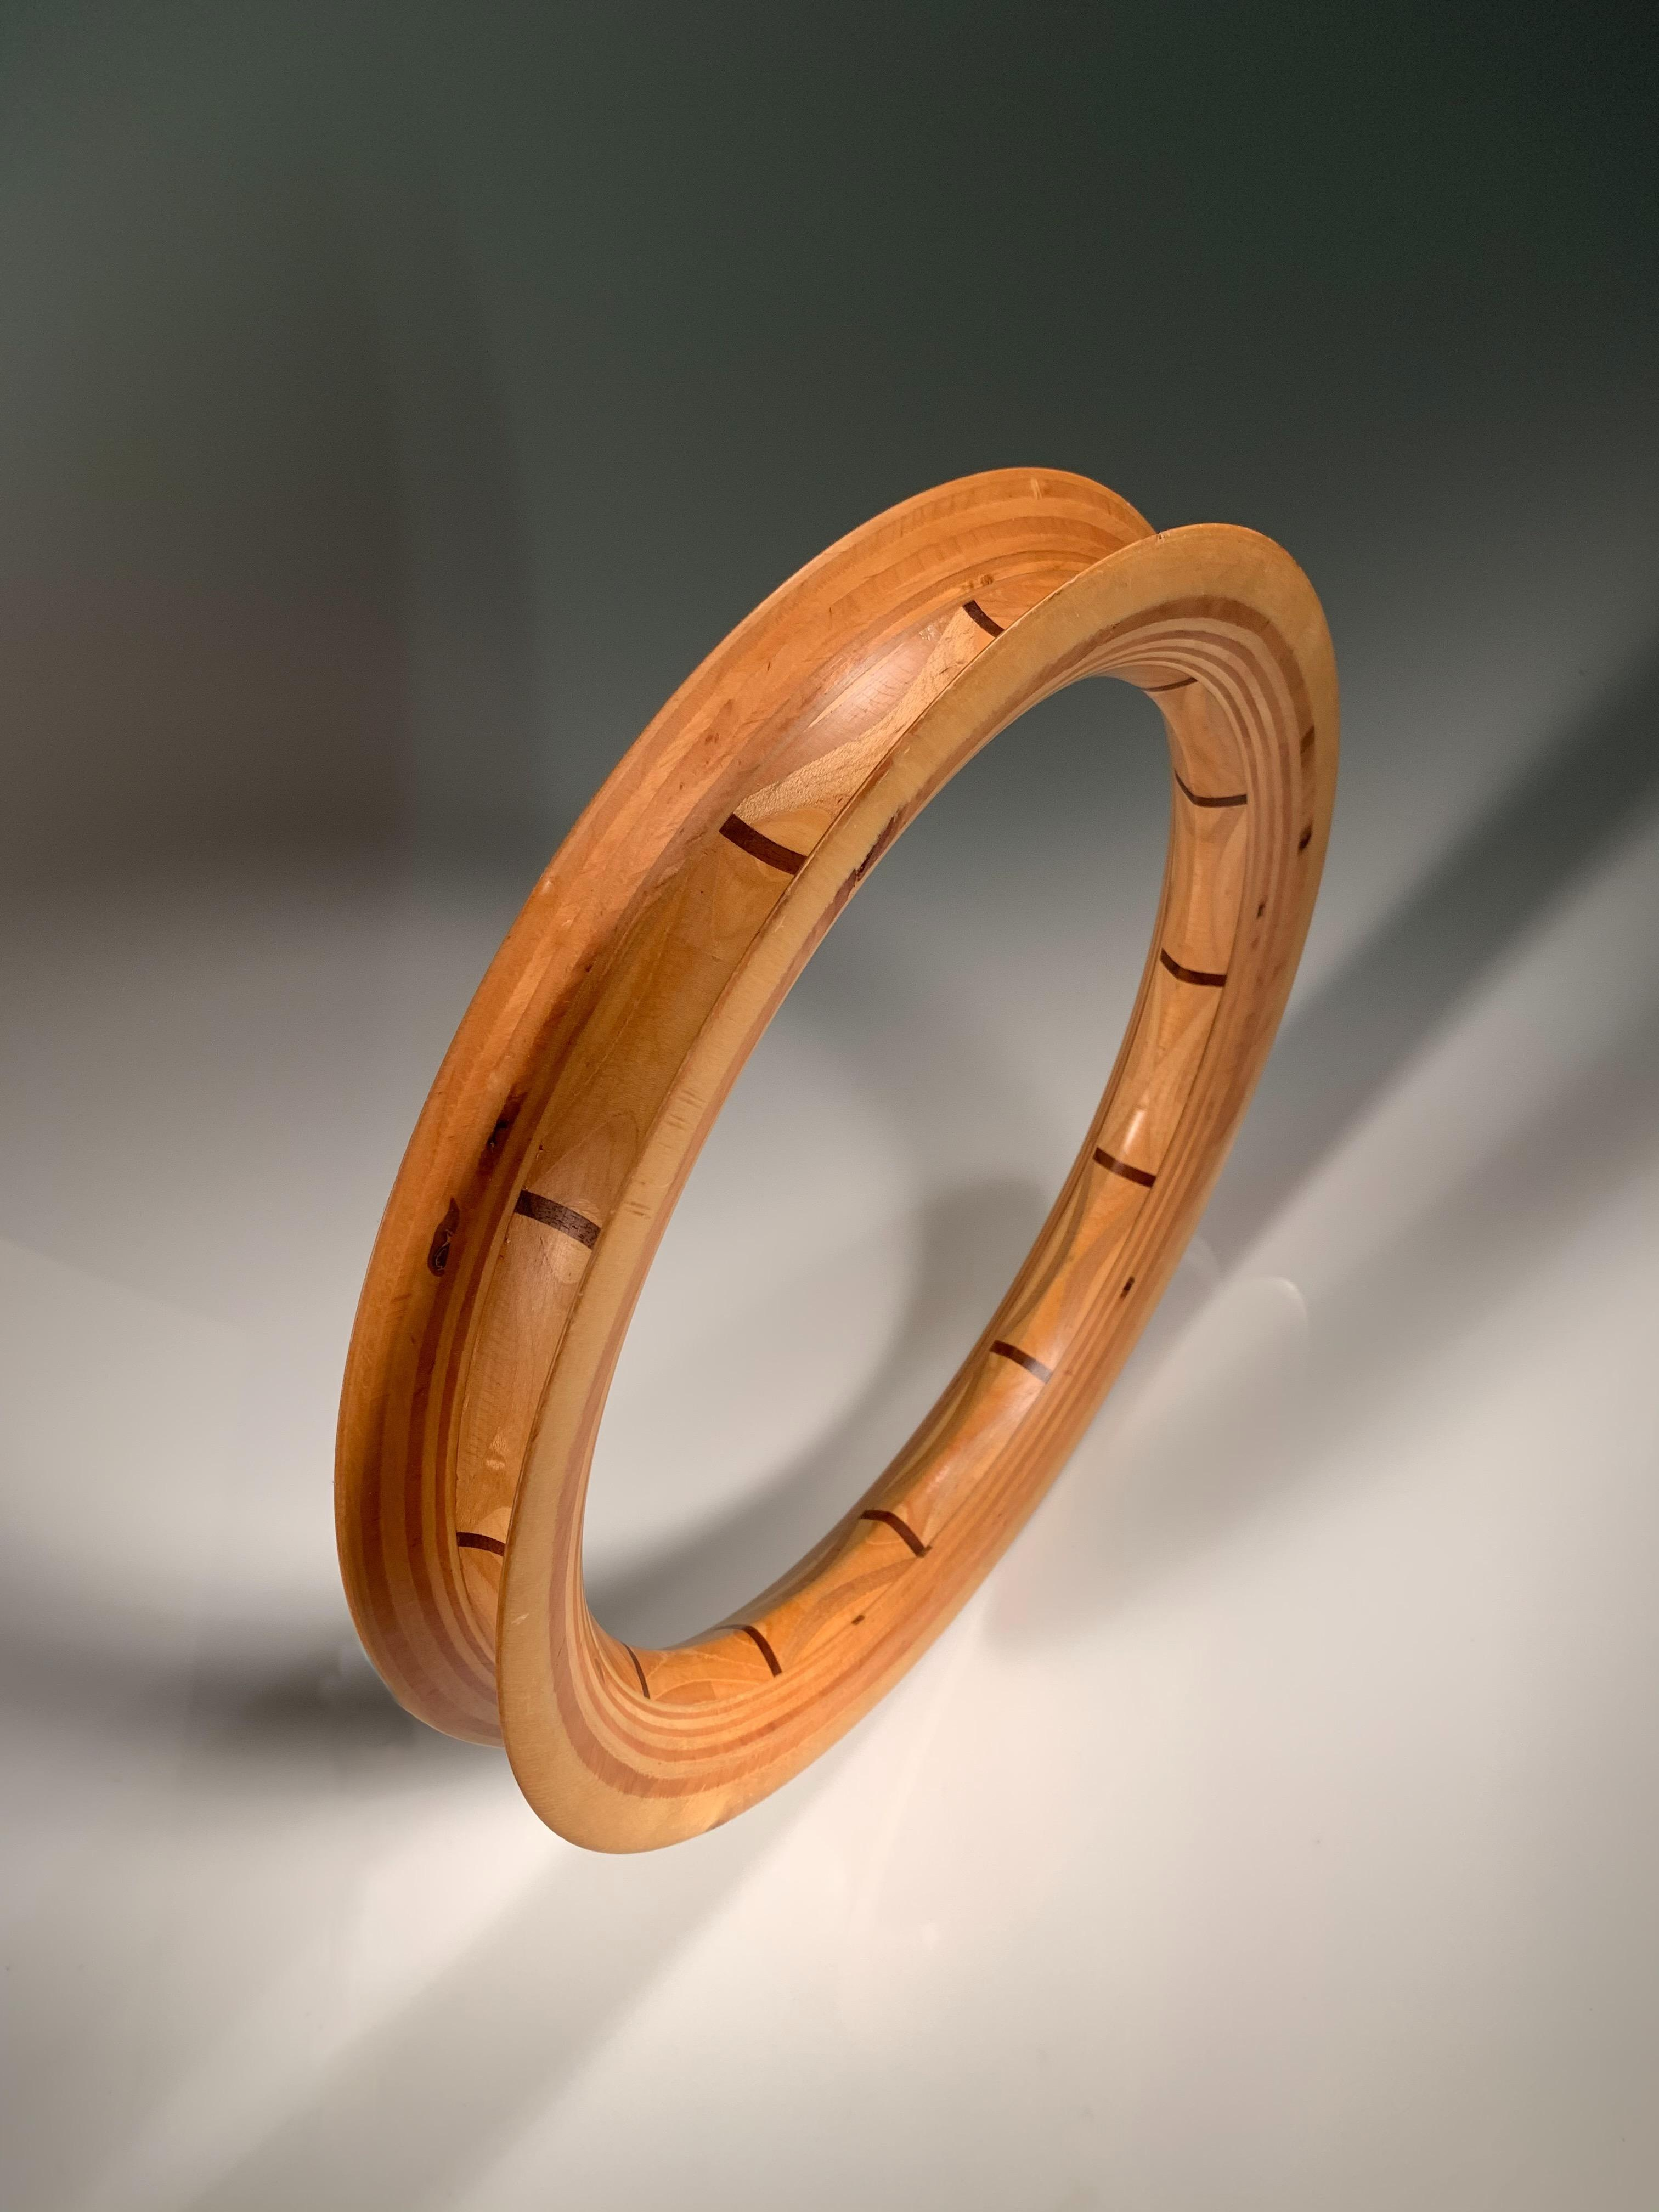 Large Turned Wood Hoop Winder For Single-Line